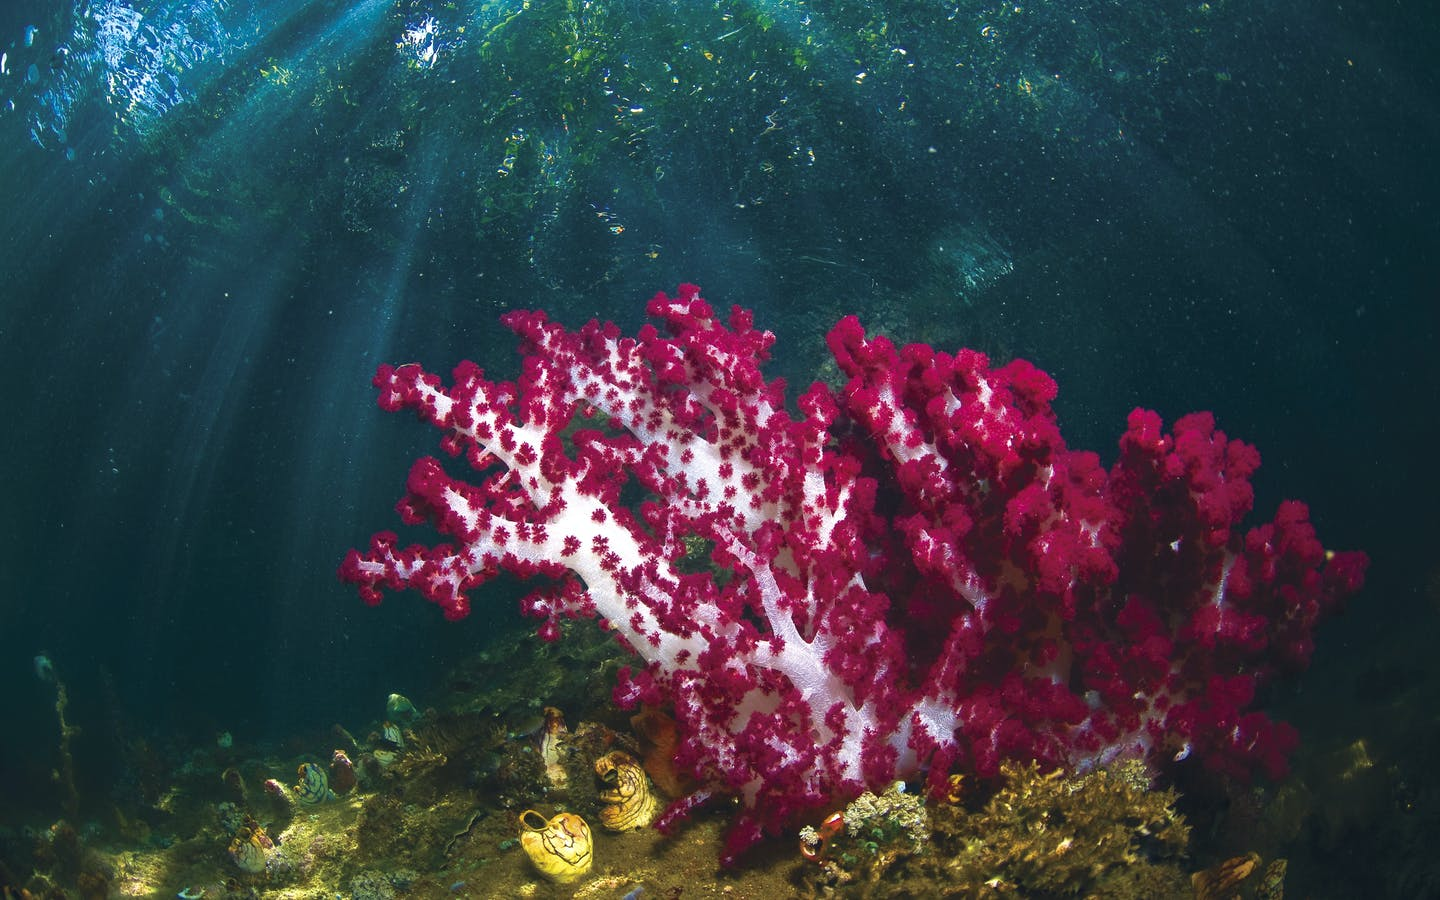 Soft coral grows close to the coastal mangroves, which provide protection from storm surge, habitat for juvenile fish and food for communities.